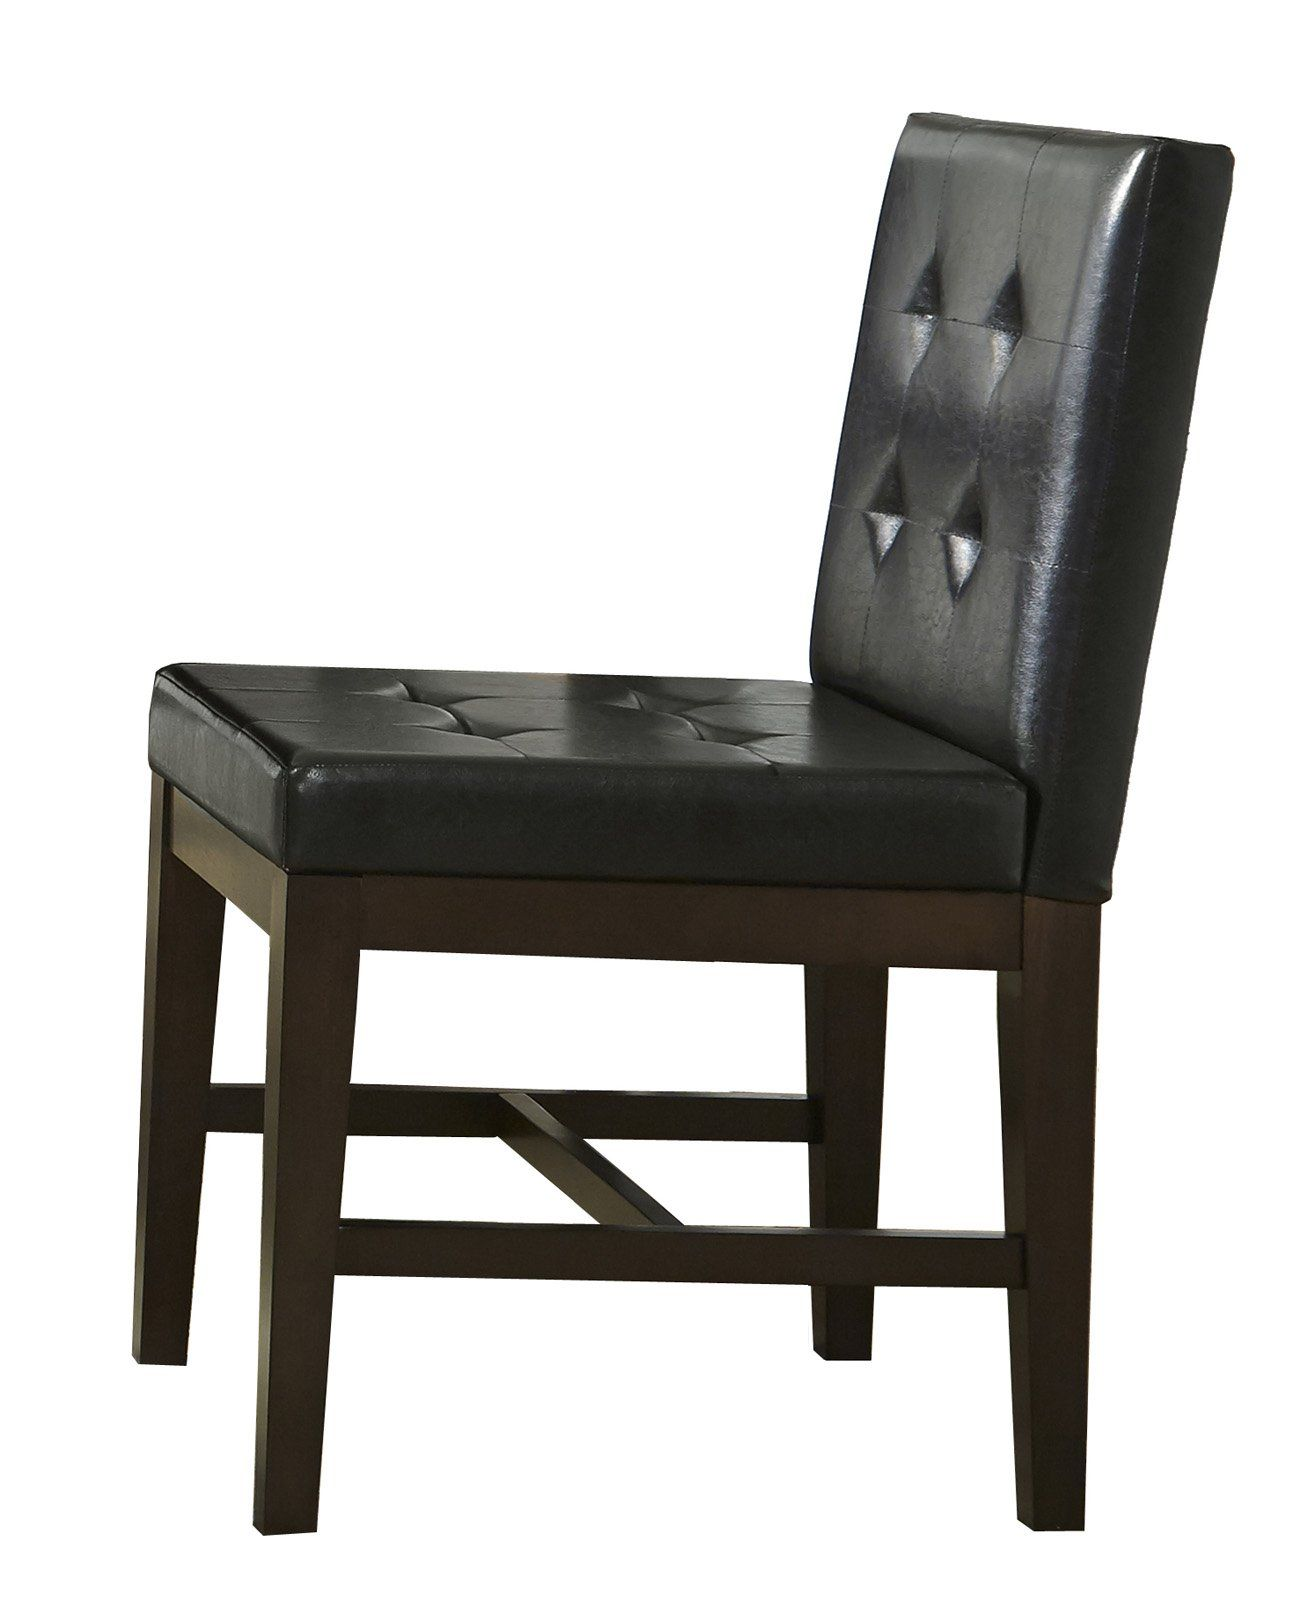 Outstanding Transitional Dining Room Suitable For Any Home: Athena Transitional Dining Uph Chairs (Set Of 2) Dark